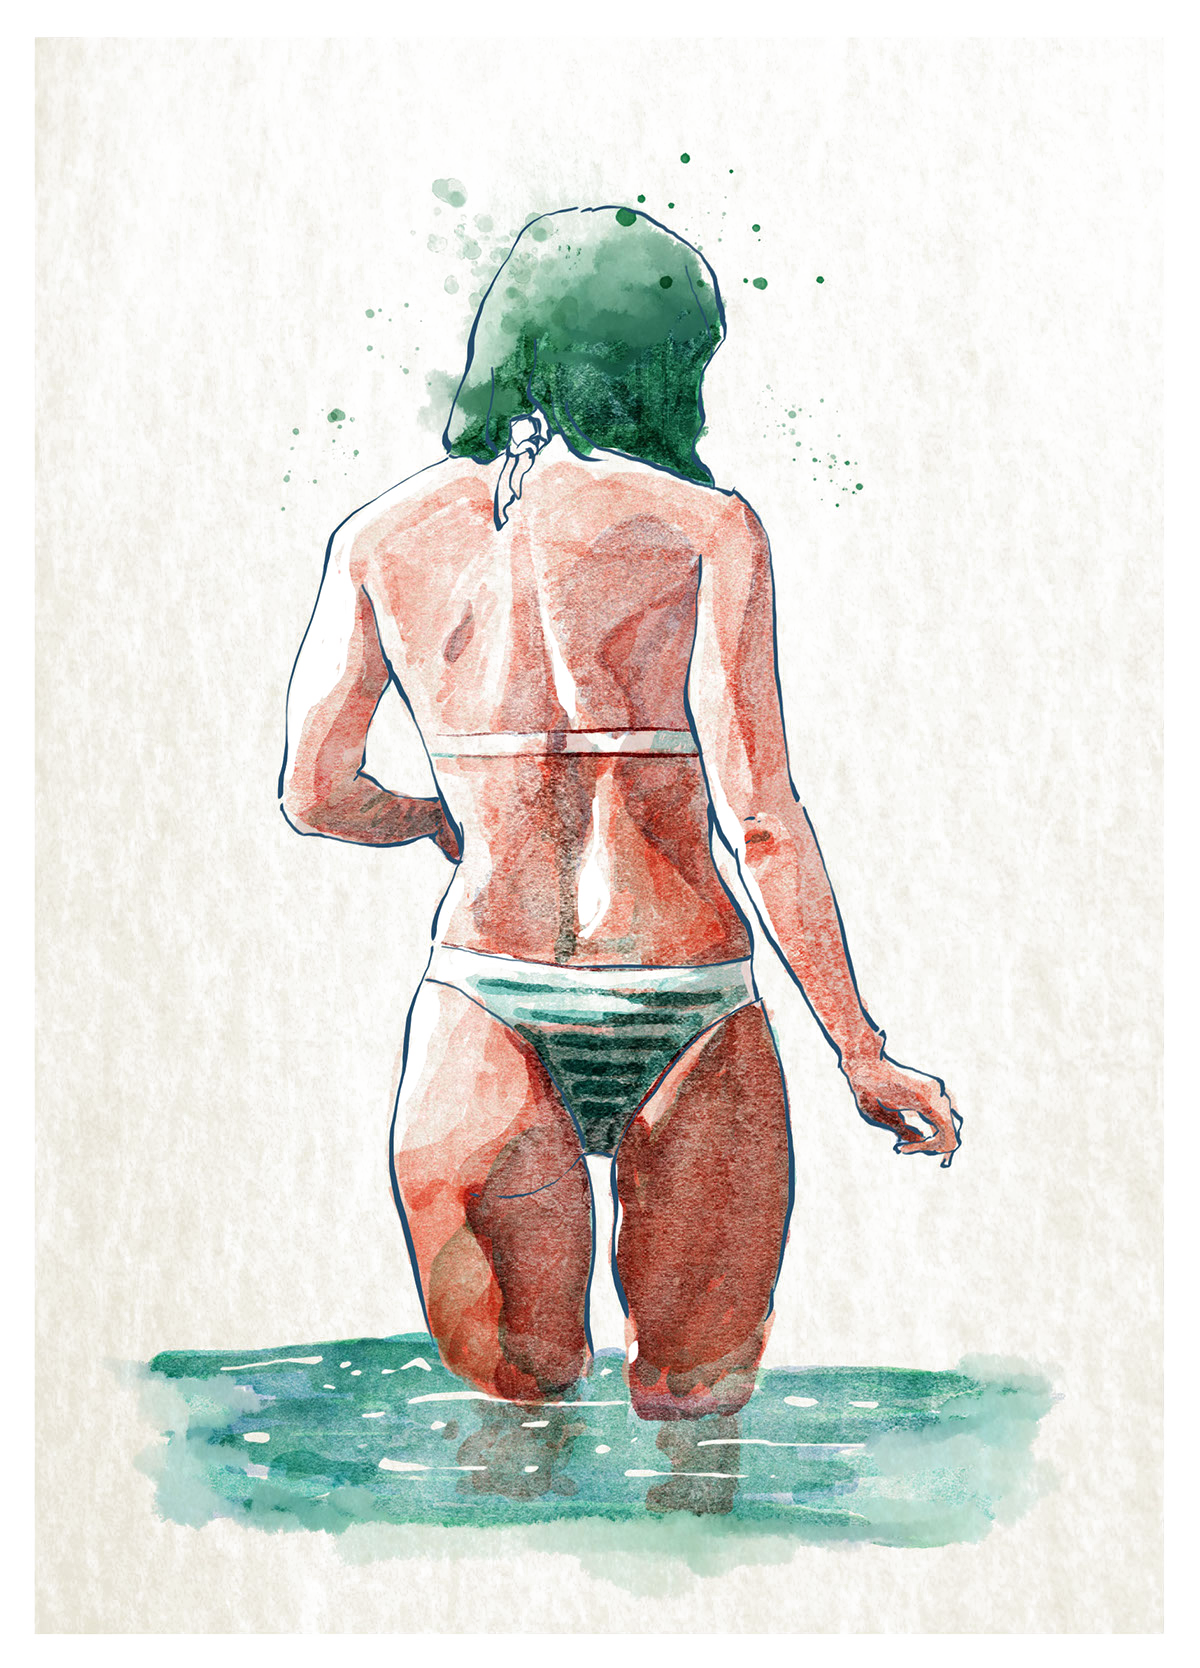 transparent stock Bikini drawing illustration. Watercolor painting hand painted